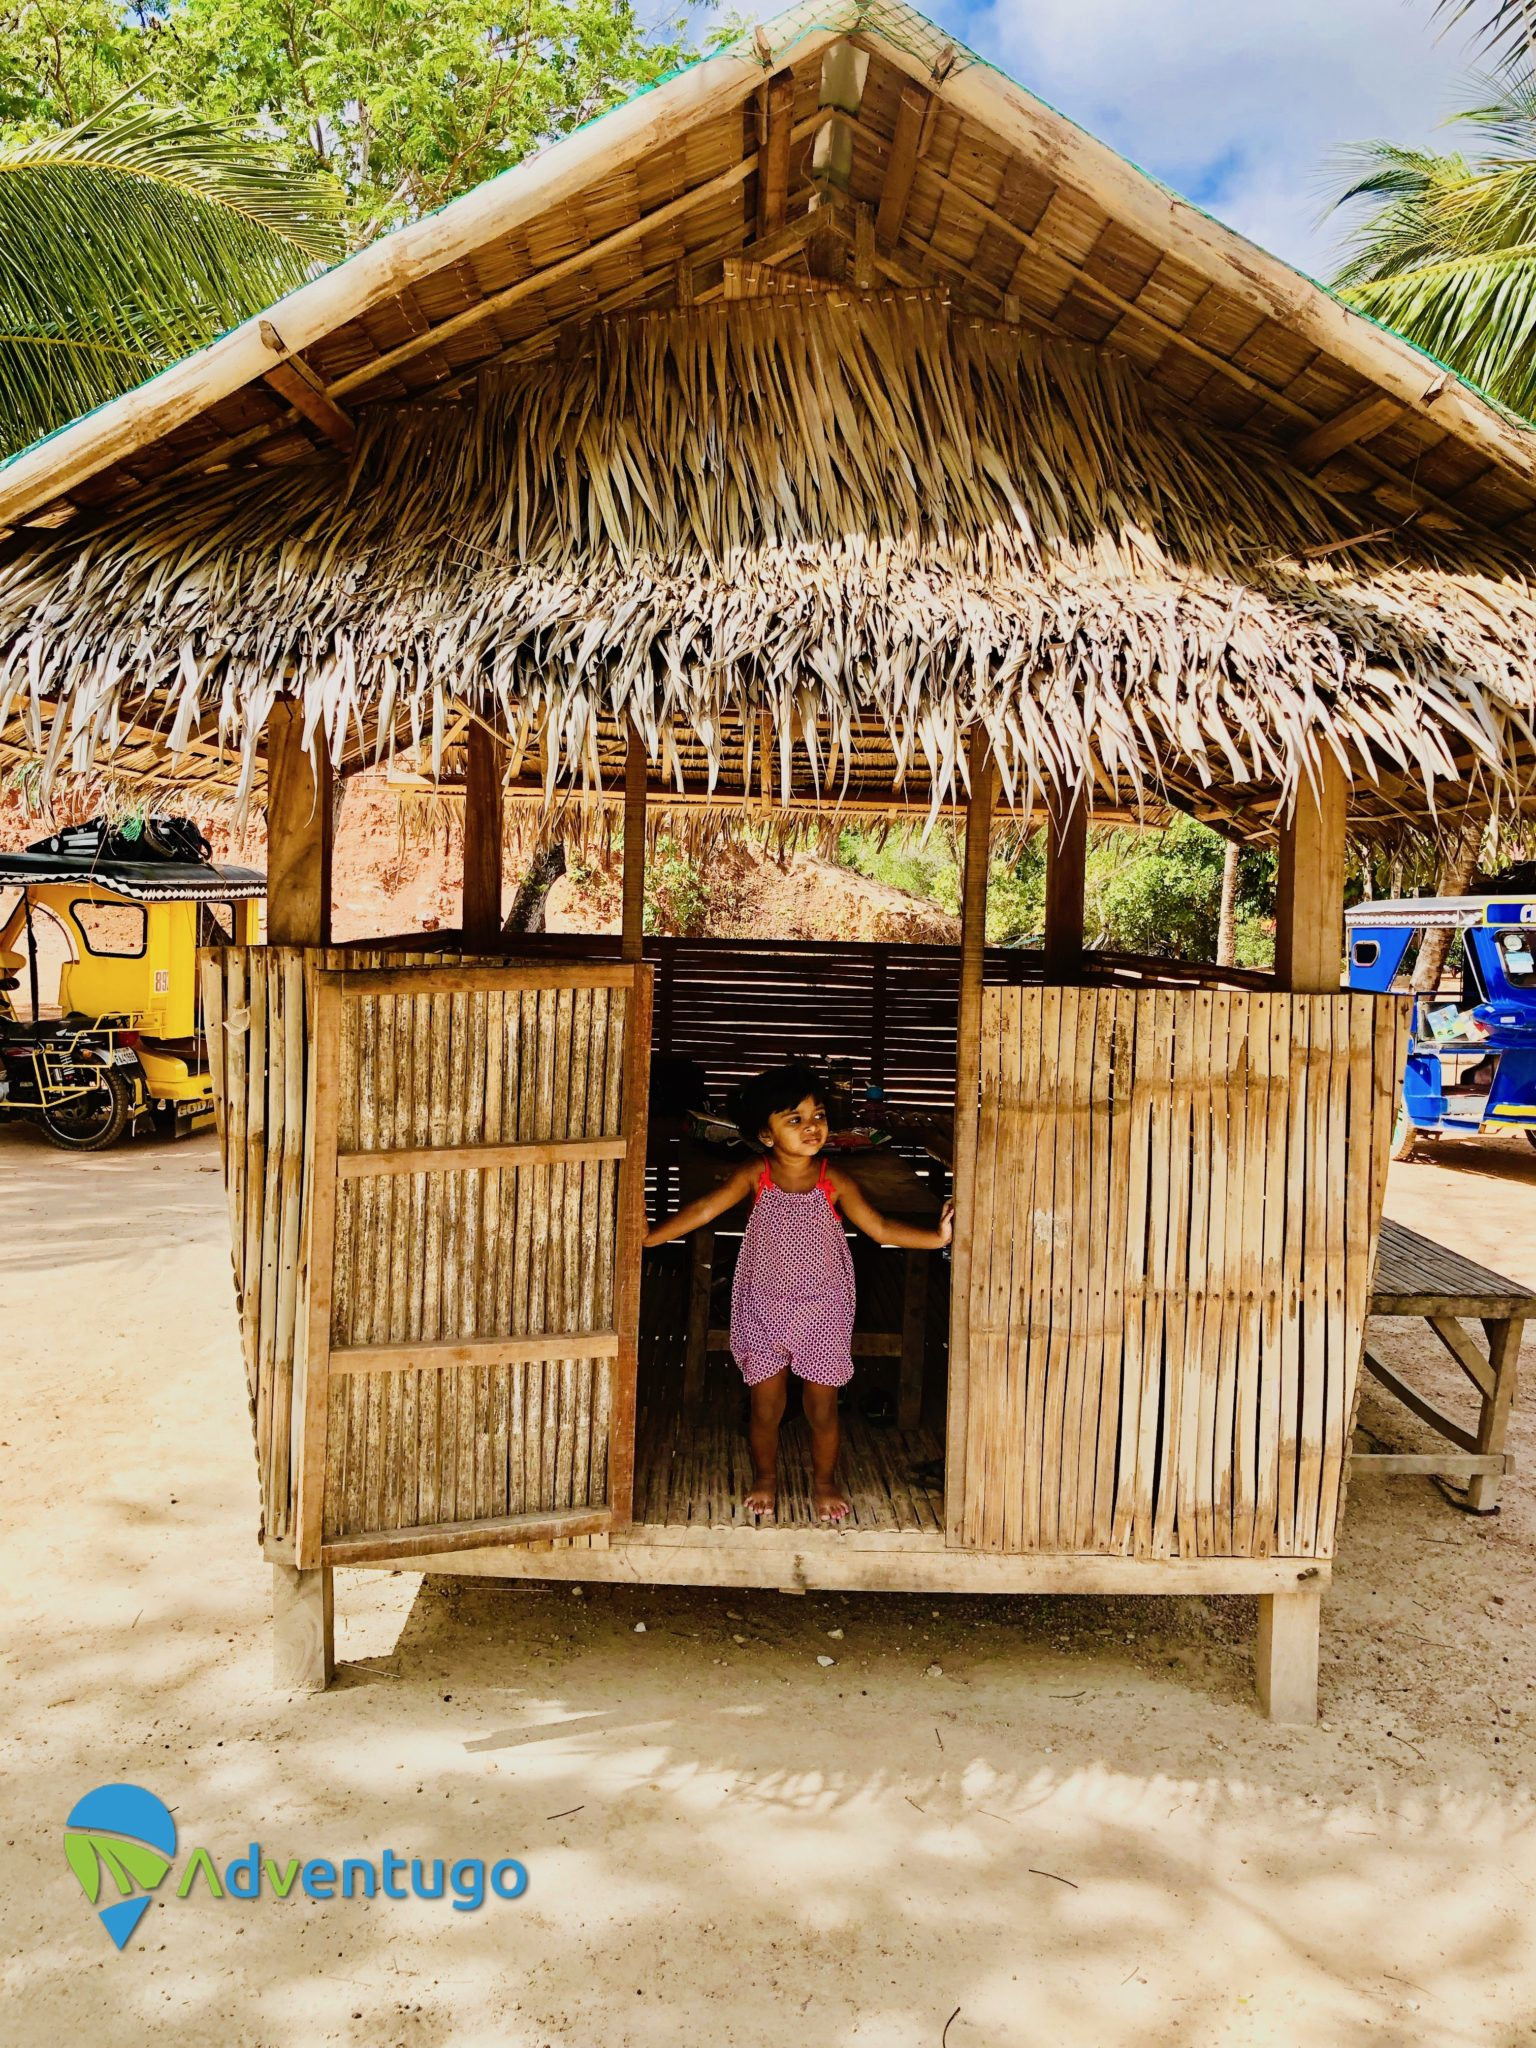 Posing in our beach hut at Cabo Beach, Coron. Philippines travel guides